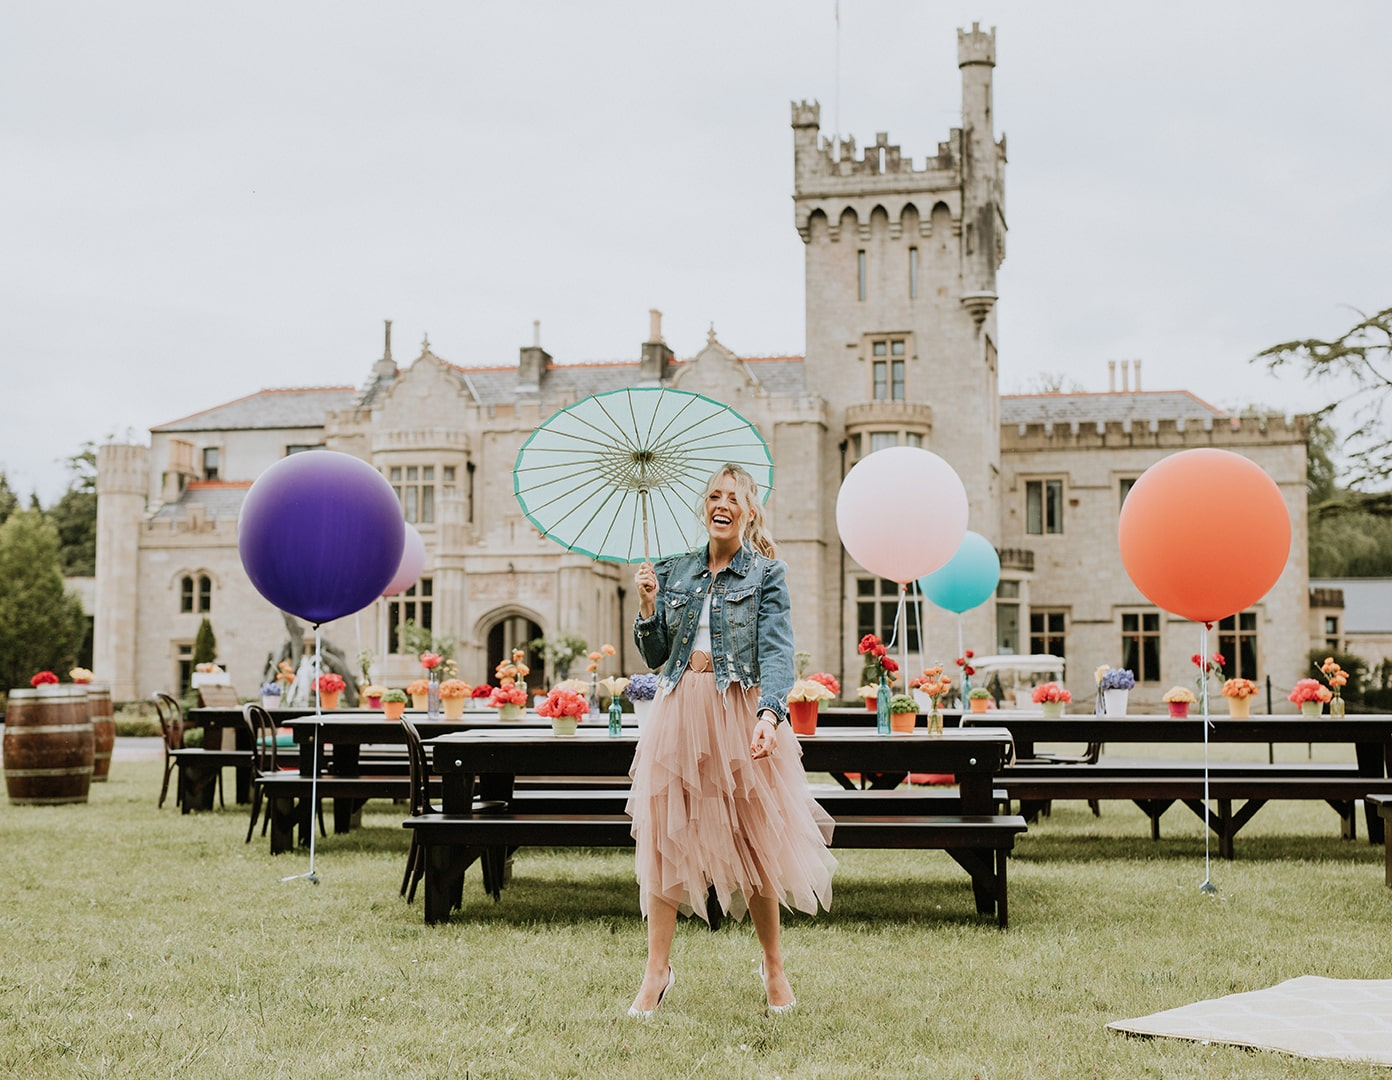 Destination Wedding Ireland, Irish Castle Wedding, Lough Eske Castle Wedding, Olivia Buckley International